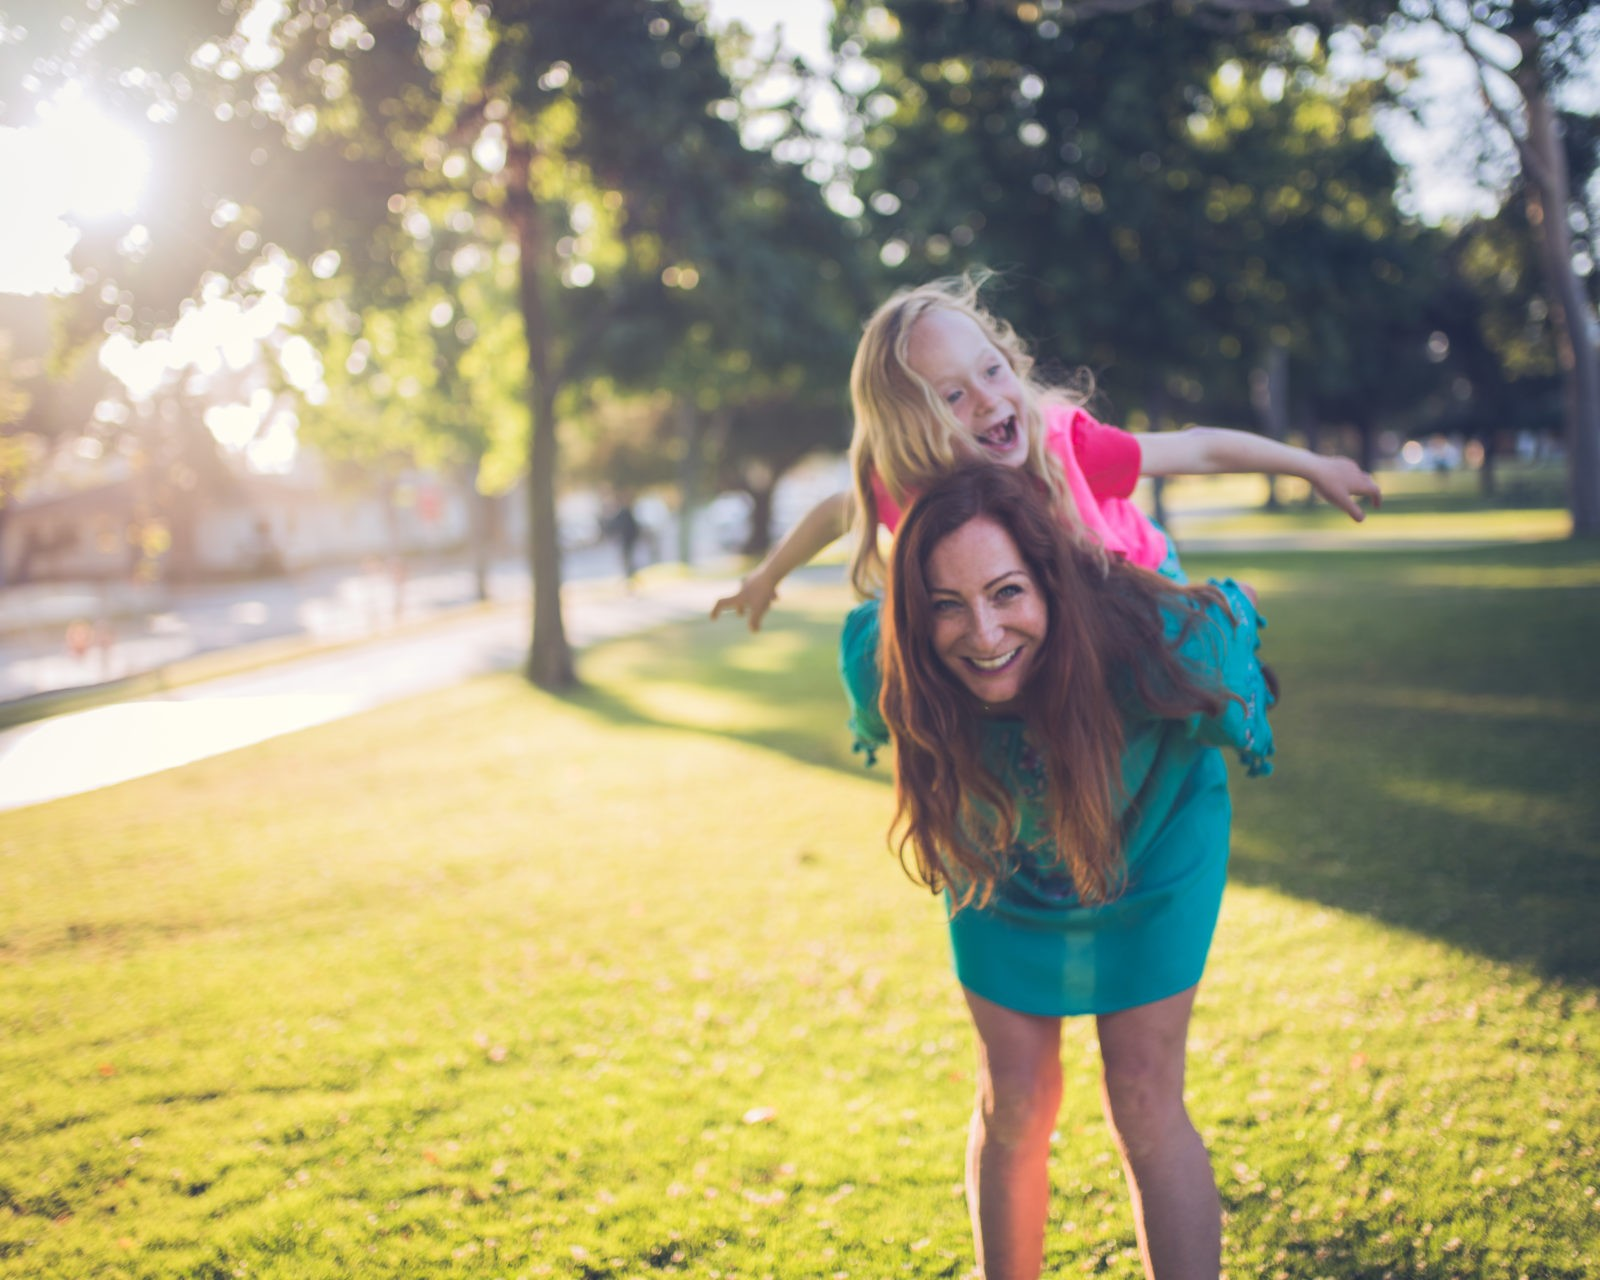 In this family photography session by Artshaped photography mother and daughter play piggy back at Clover Park in Santa Monica as the sun light filters through the trees.